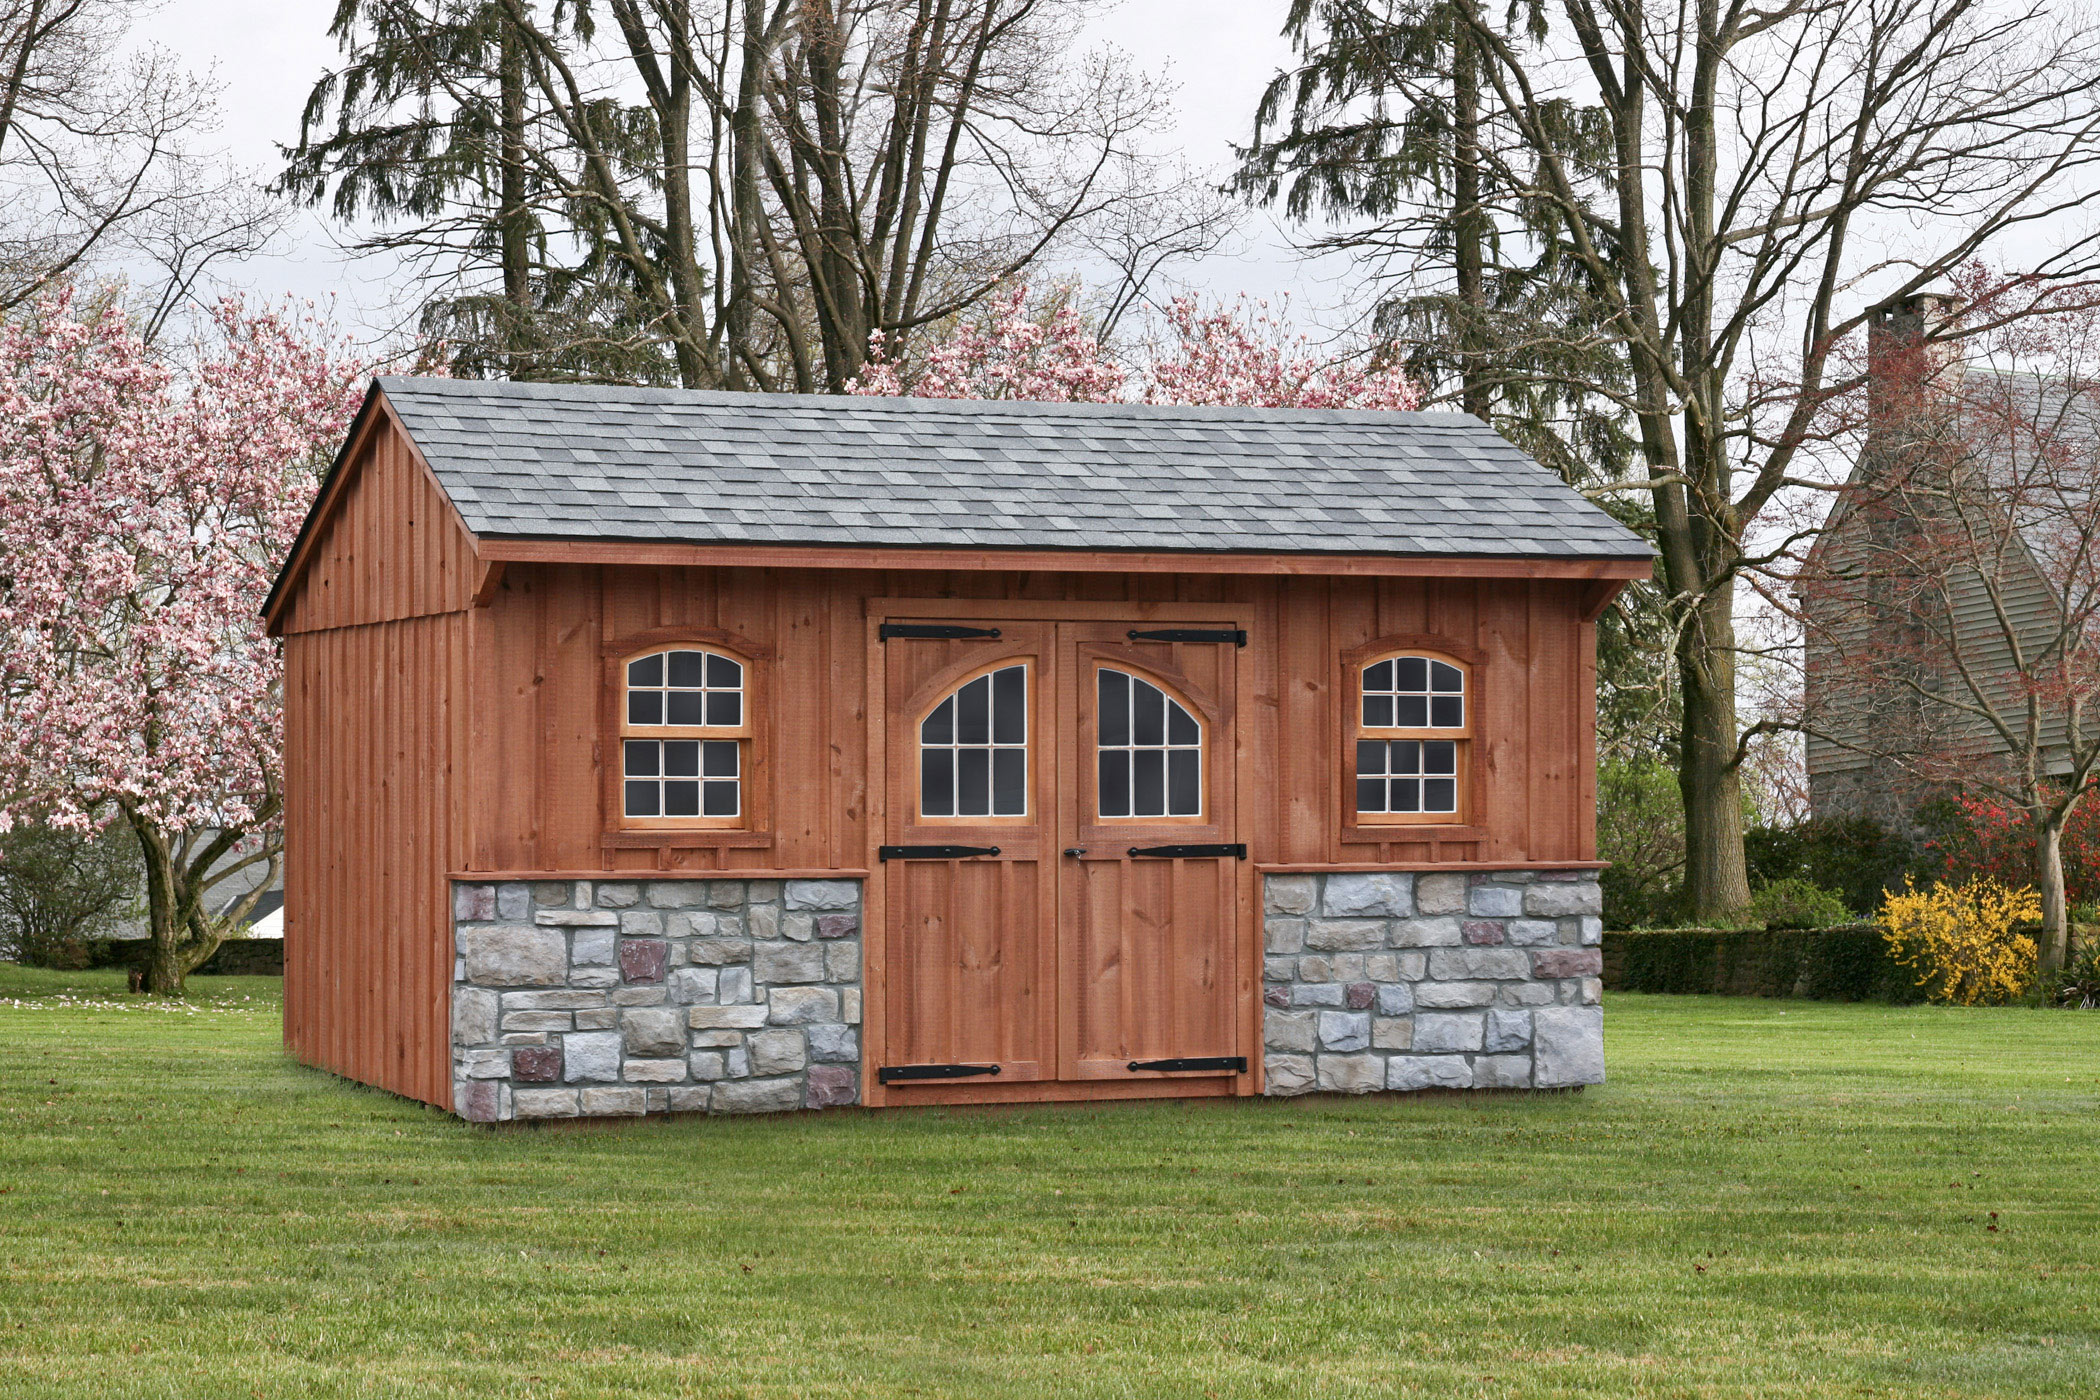 Custom amish backyard wood sheds for sale in oneonta ny for Board and batten shed plans